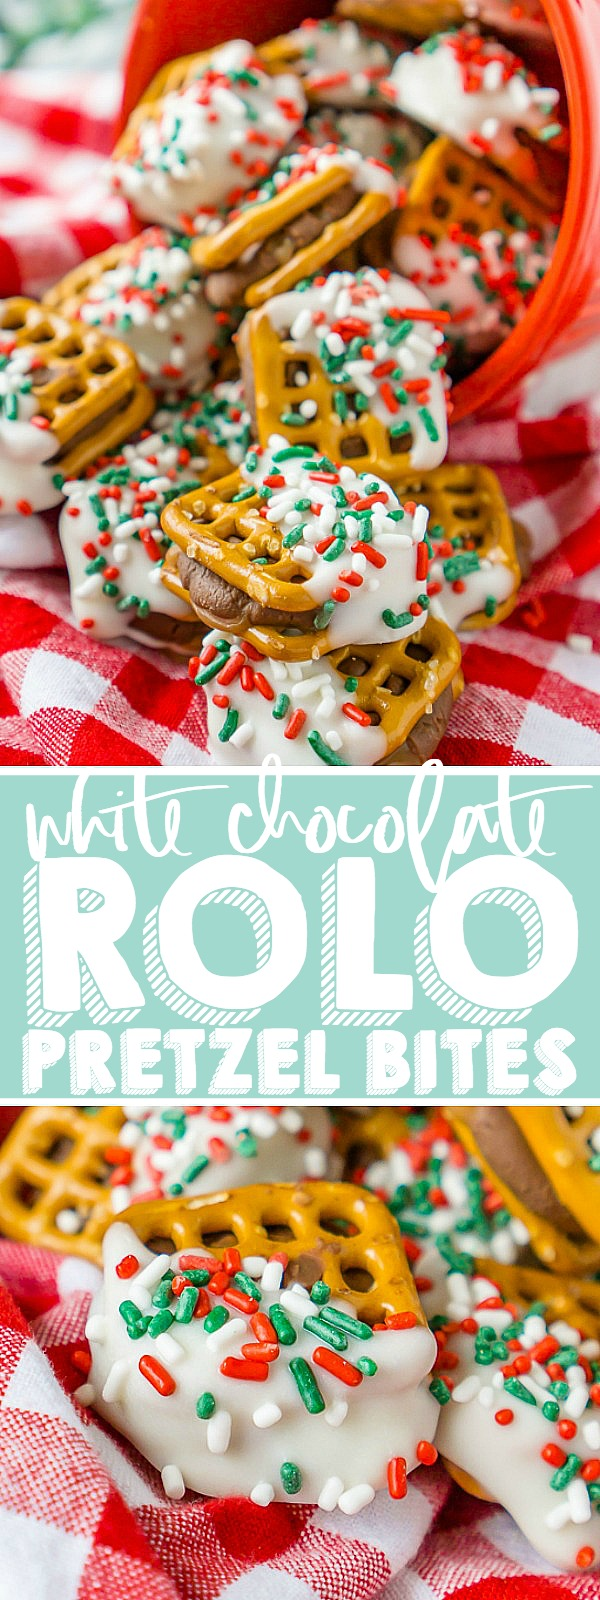 It doesn't get much better than a salty, chocolate and caramel combination! These Holiday Rolo Pretzel Bites are perfection in a bite sized dessert that can be easily customized for any holiday with a change of sprinkles!!| THE LOVE NERDS #christmascandy #christmasdessert #candyrecipe #holidayrecipe